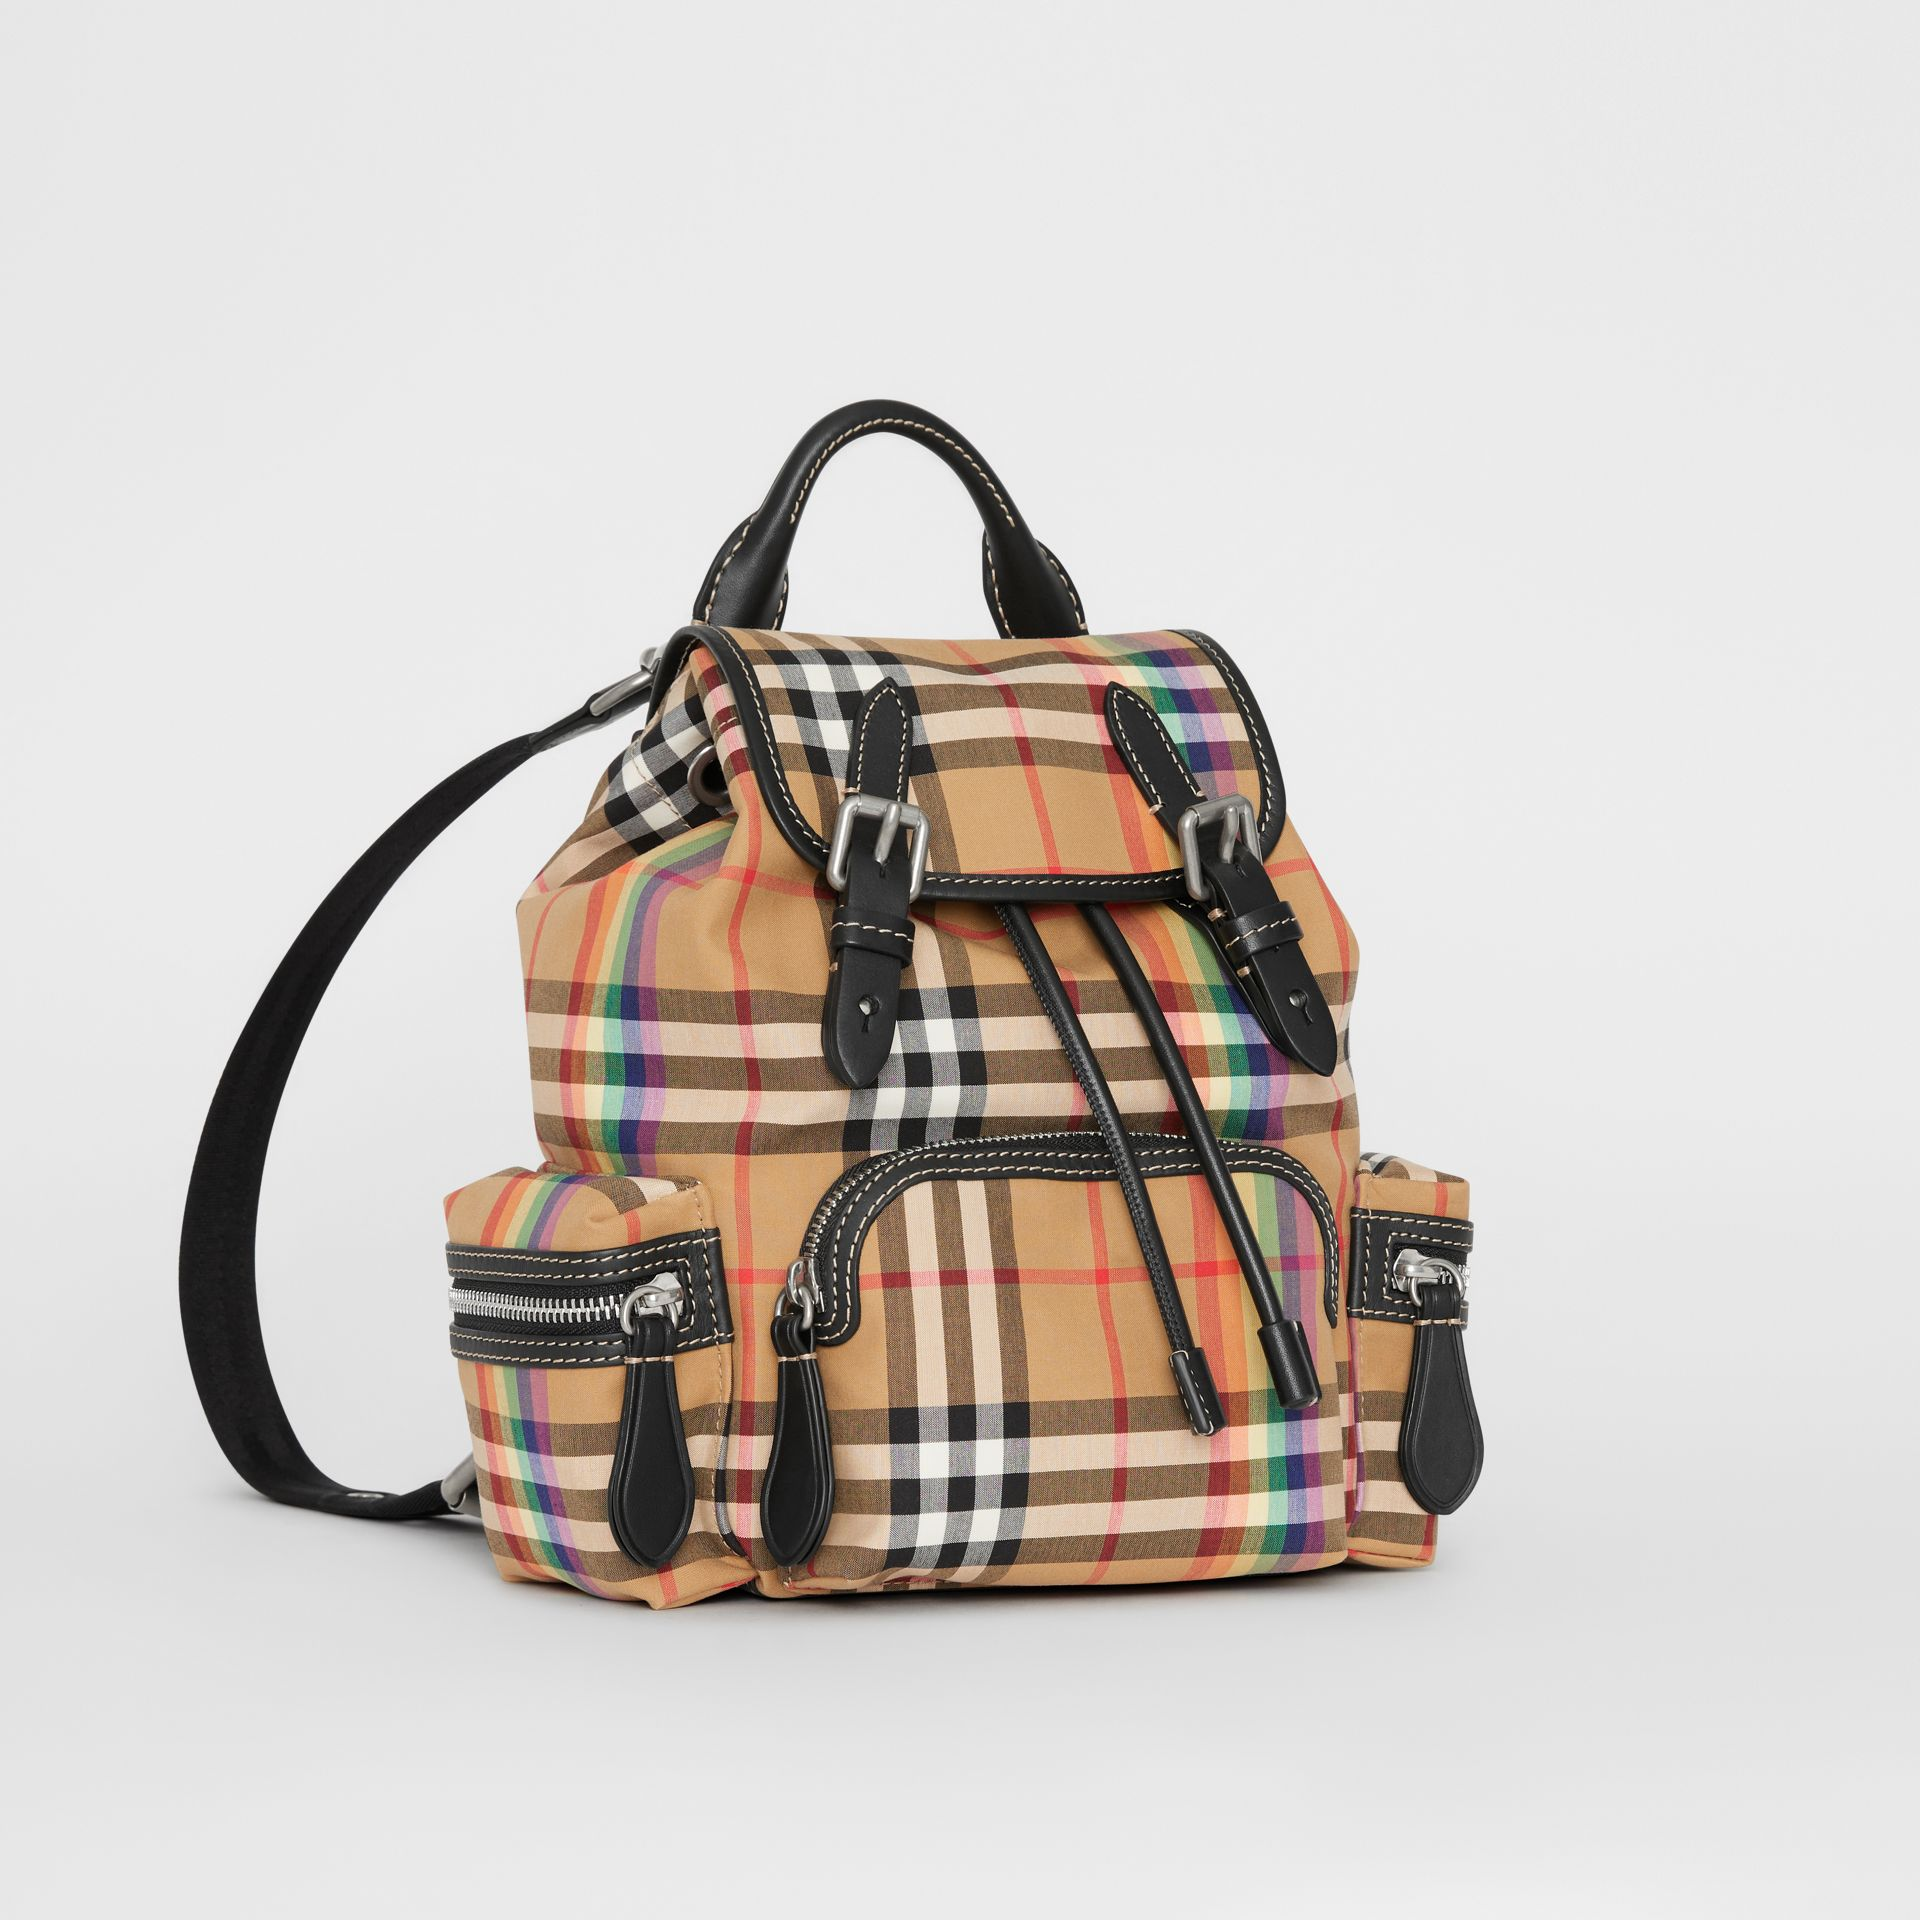 Petit sac The Rucksack à bandoulière avec motif Rainbow Vintage check (Jaune Antique) - Femme | Burberry Canada - photo de la galerie 4